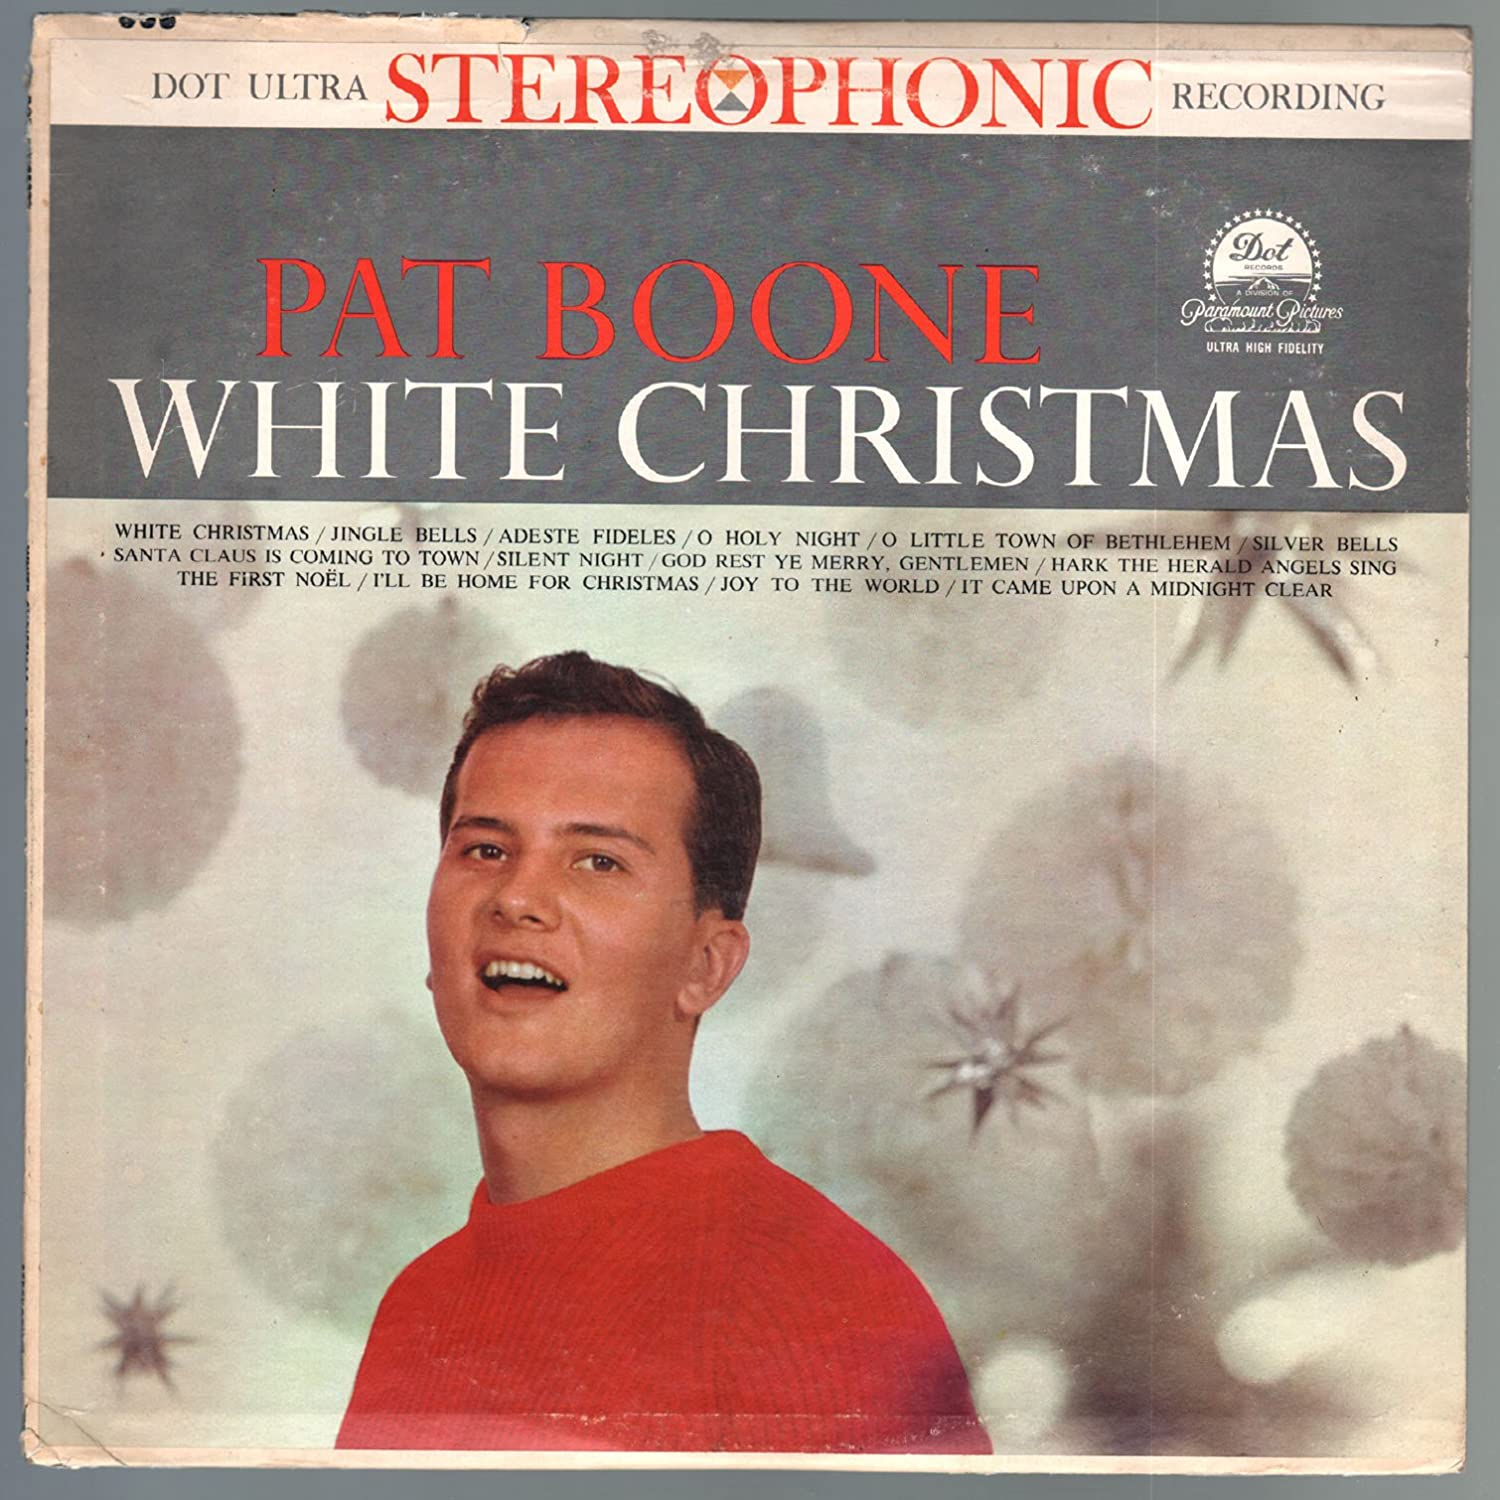 pat boone pat boone white christmas 1959 exvg amazoncom music - What Year Did White Christmas Come Out